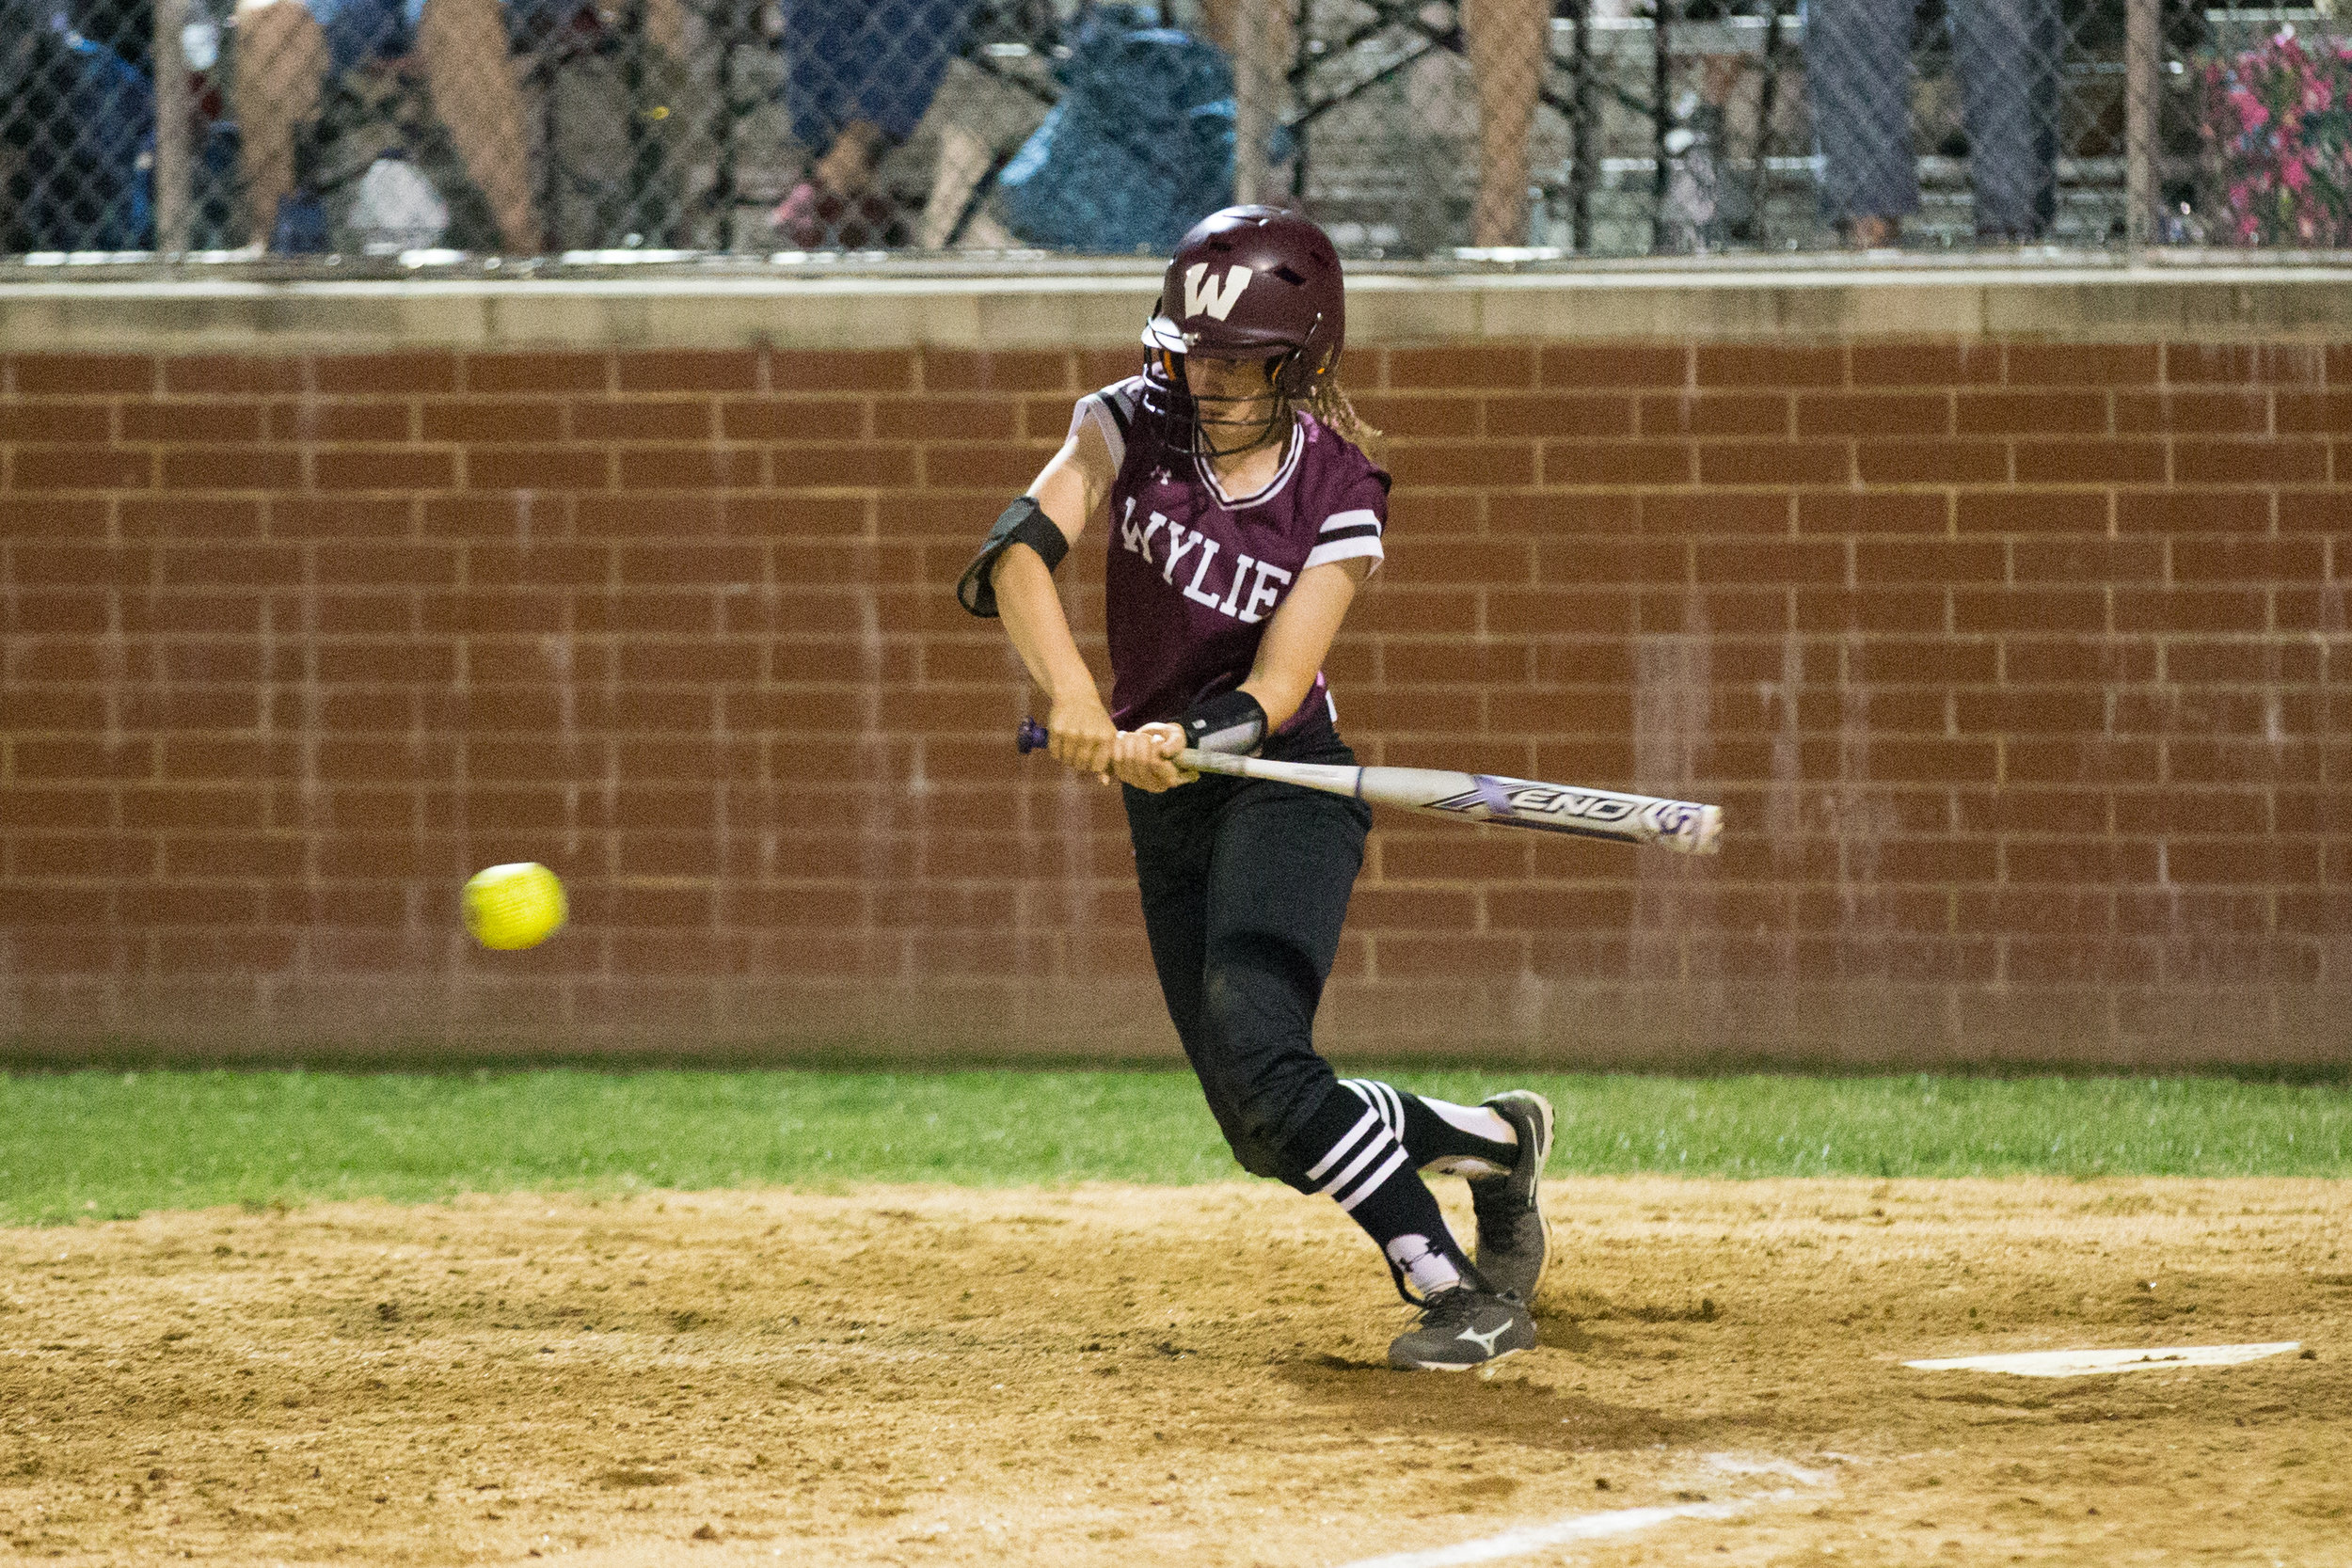 5_18 Wylie Softball-186.jpg